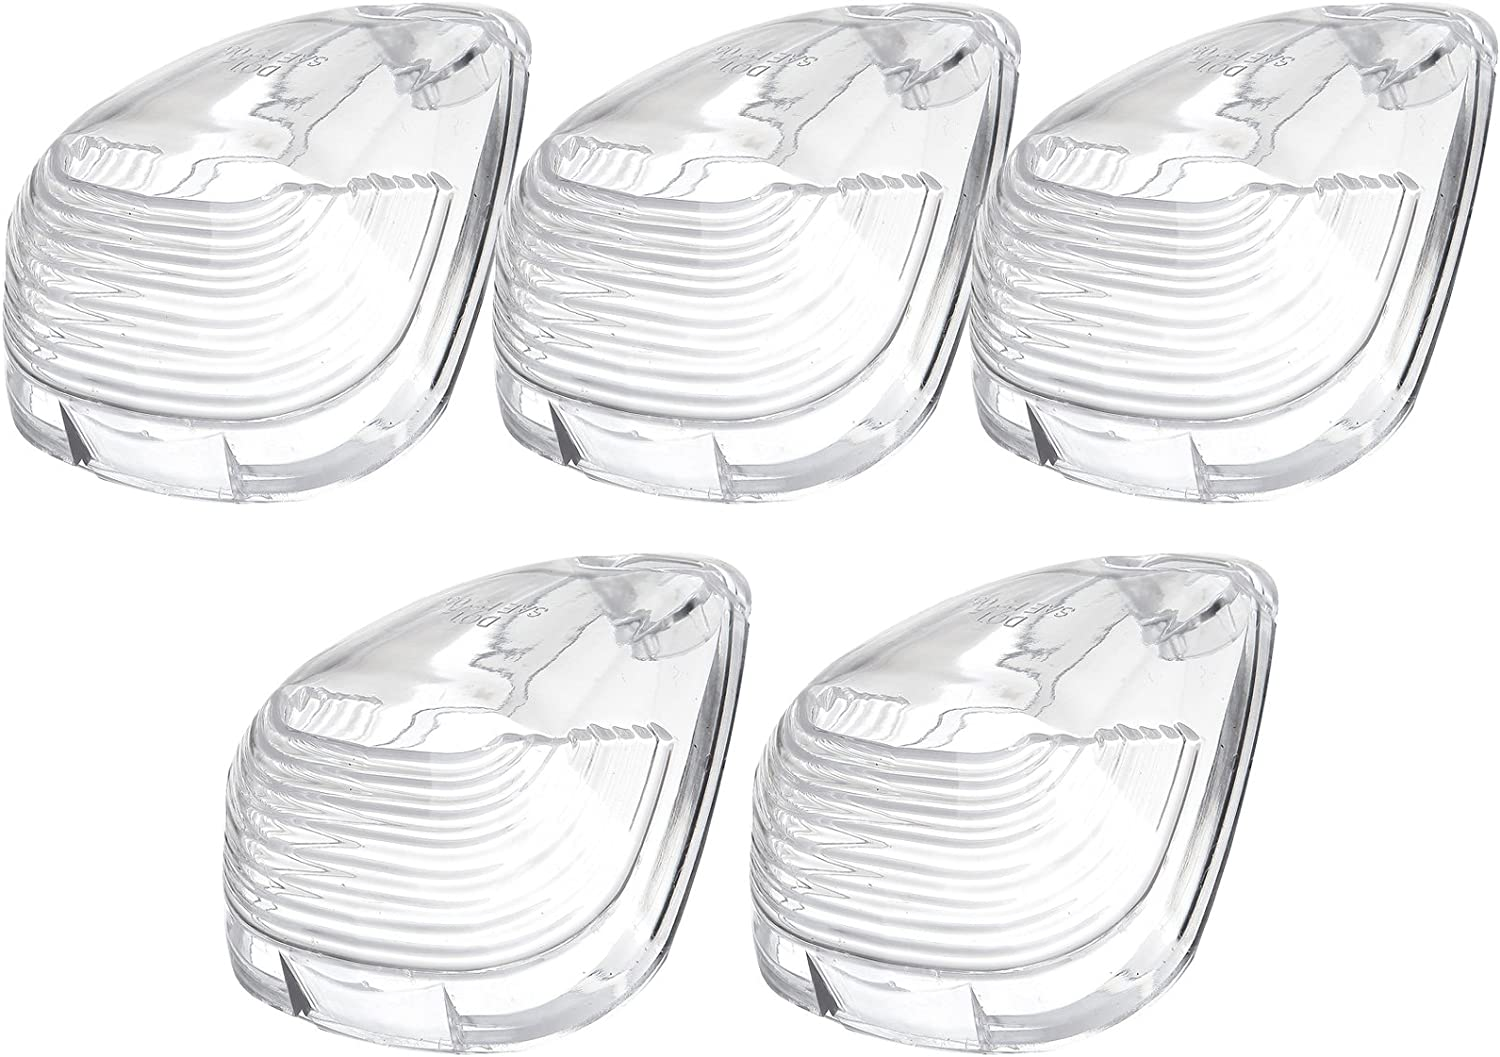 cciyu Cab Marker Light 5x Clear Top Clearance Roof Running Covers//Lens Replacement Cab Marker Assembly Replacement fit for 1999-2015 Replacement fit ford F250 F350 F450